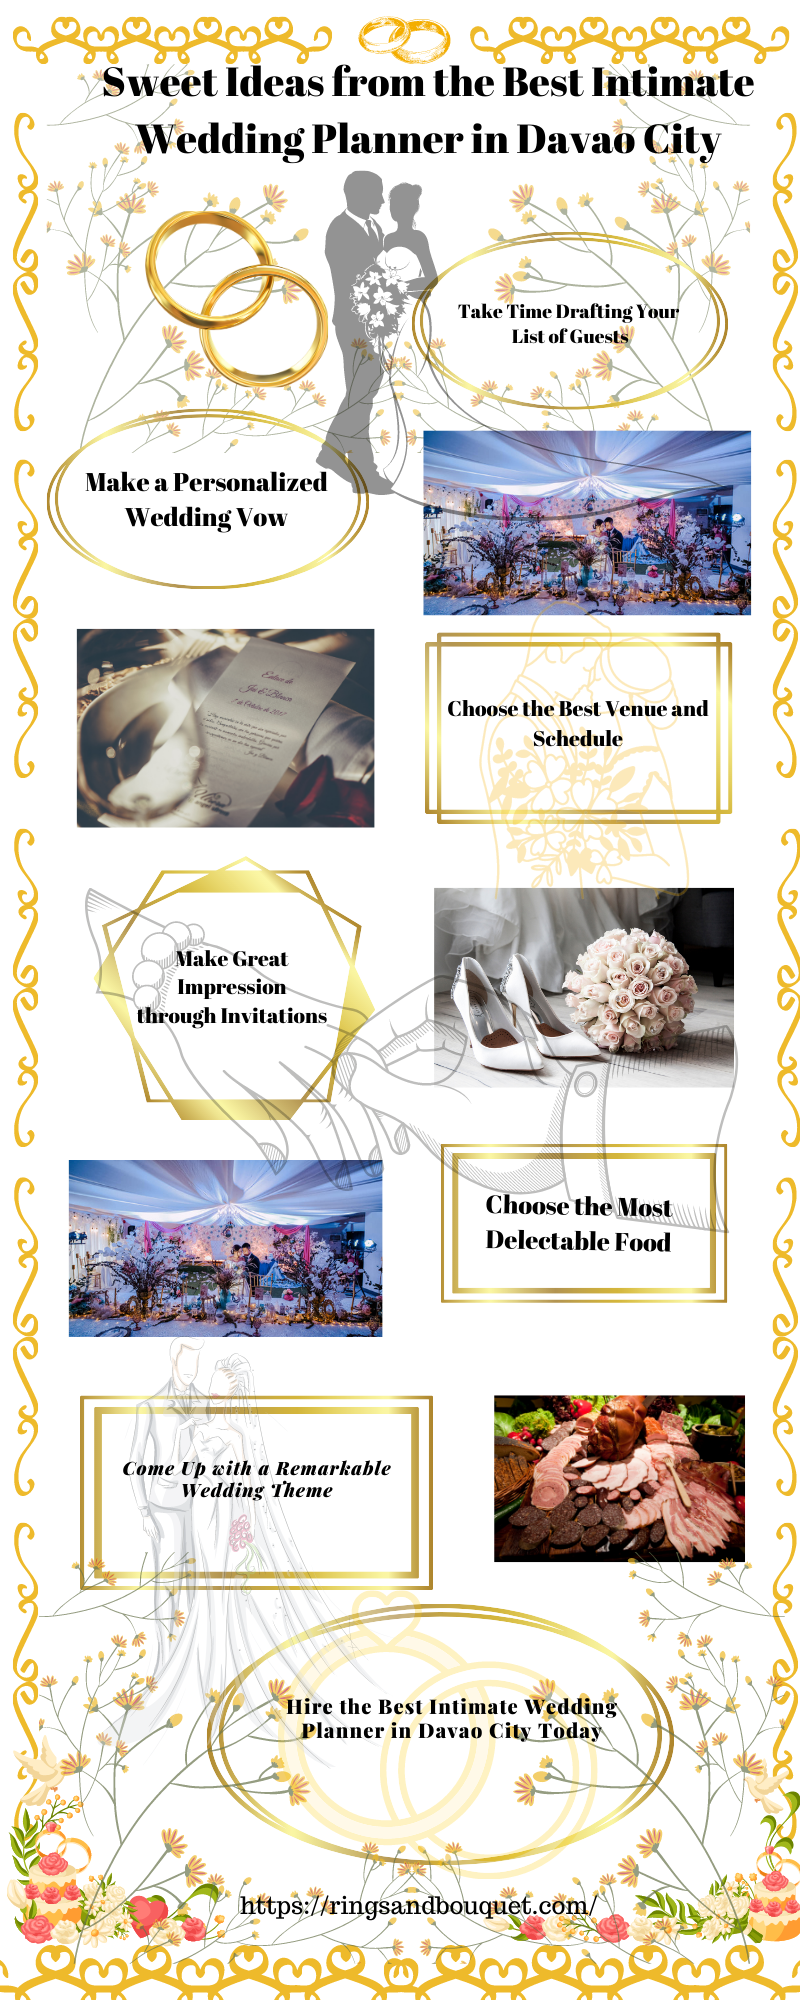 Sweet Ideas from the Best Intimate Wedding Planner in Davao City 1